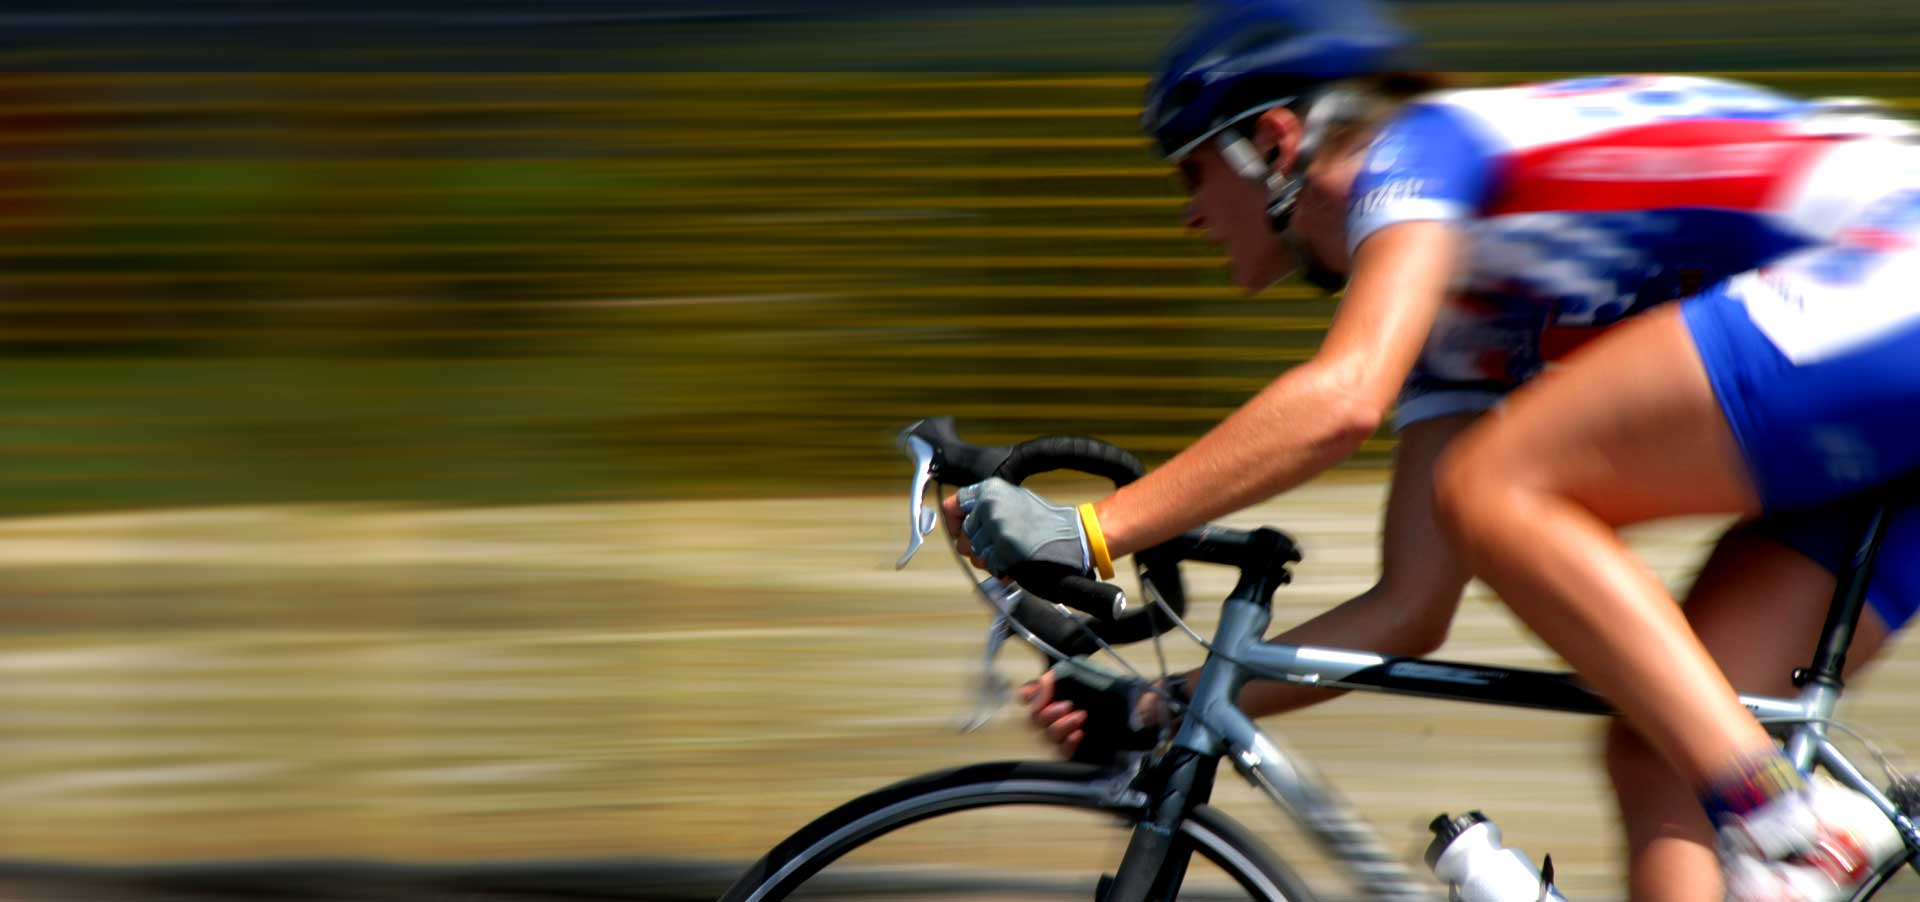 Bicycle Accident banner image